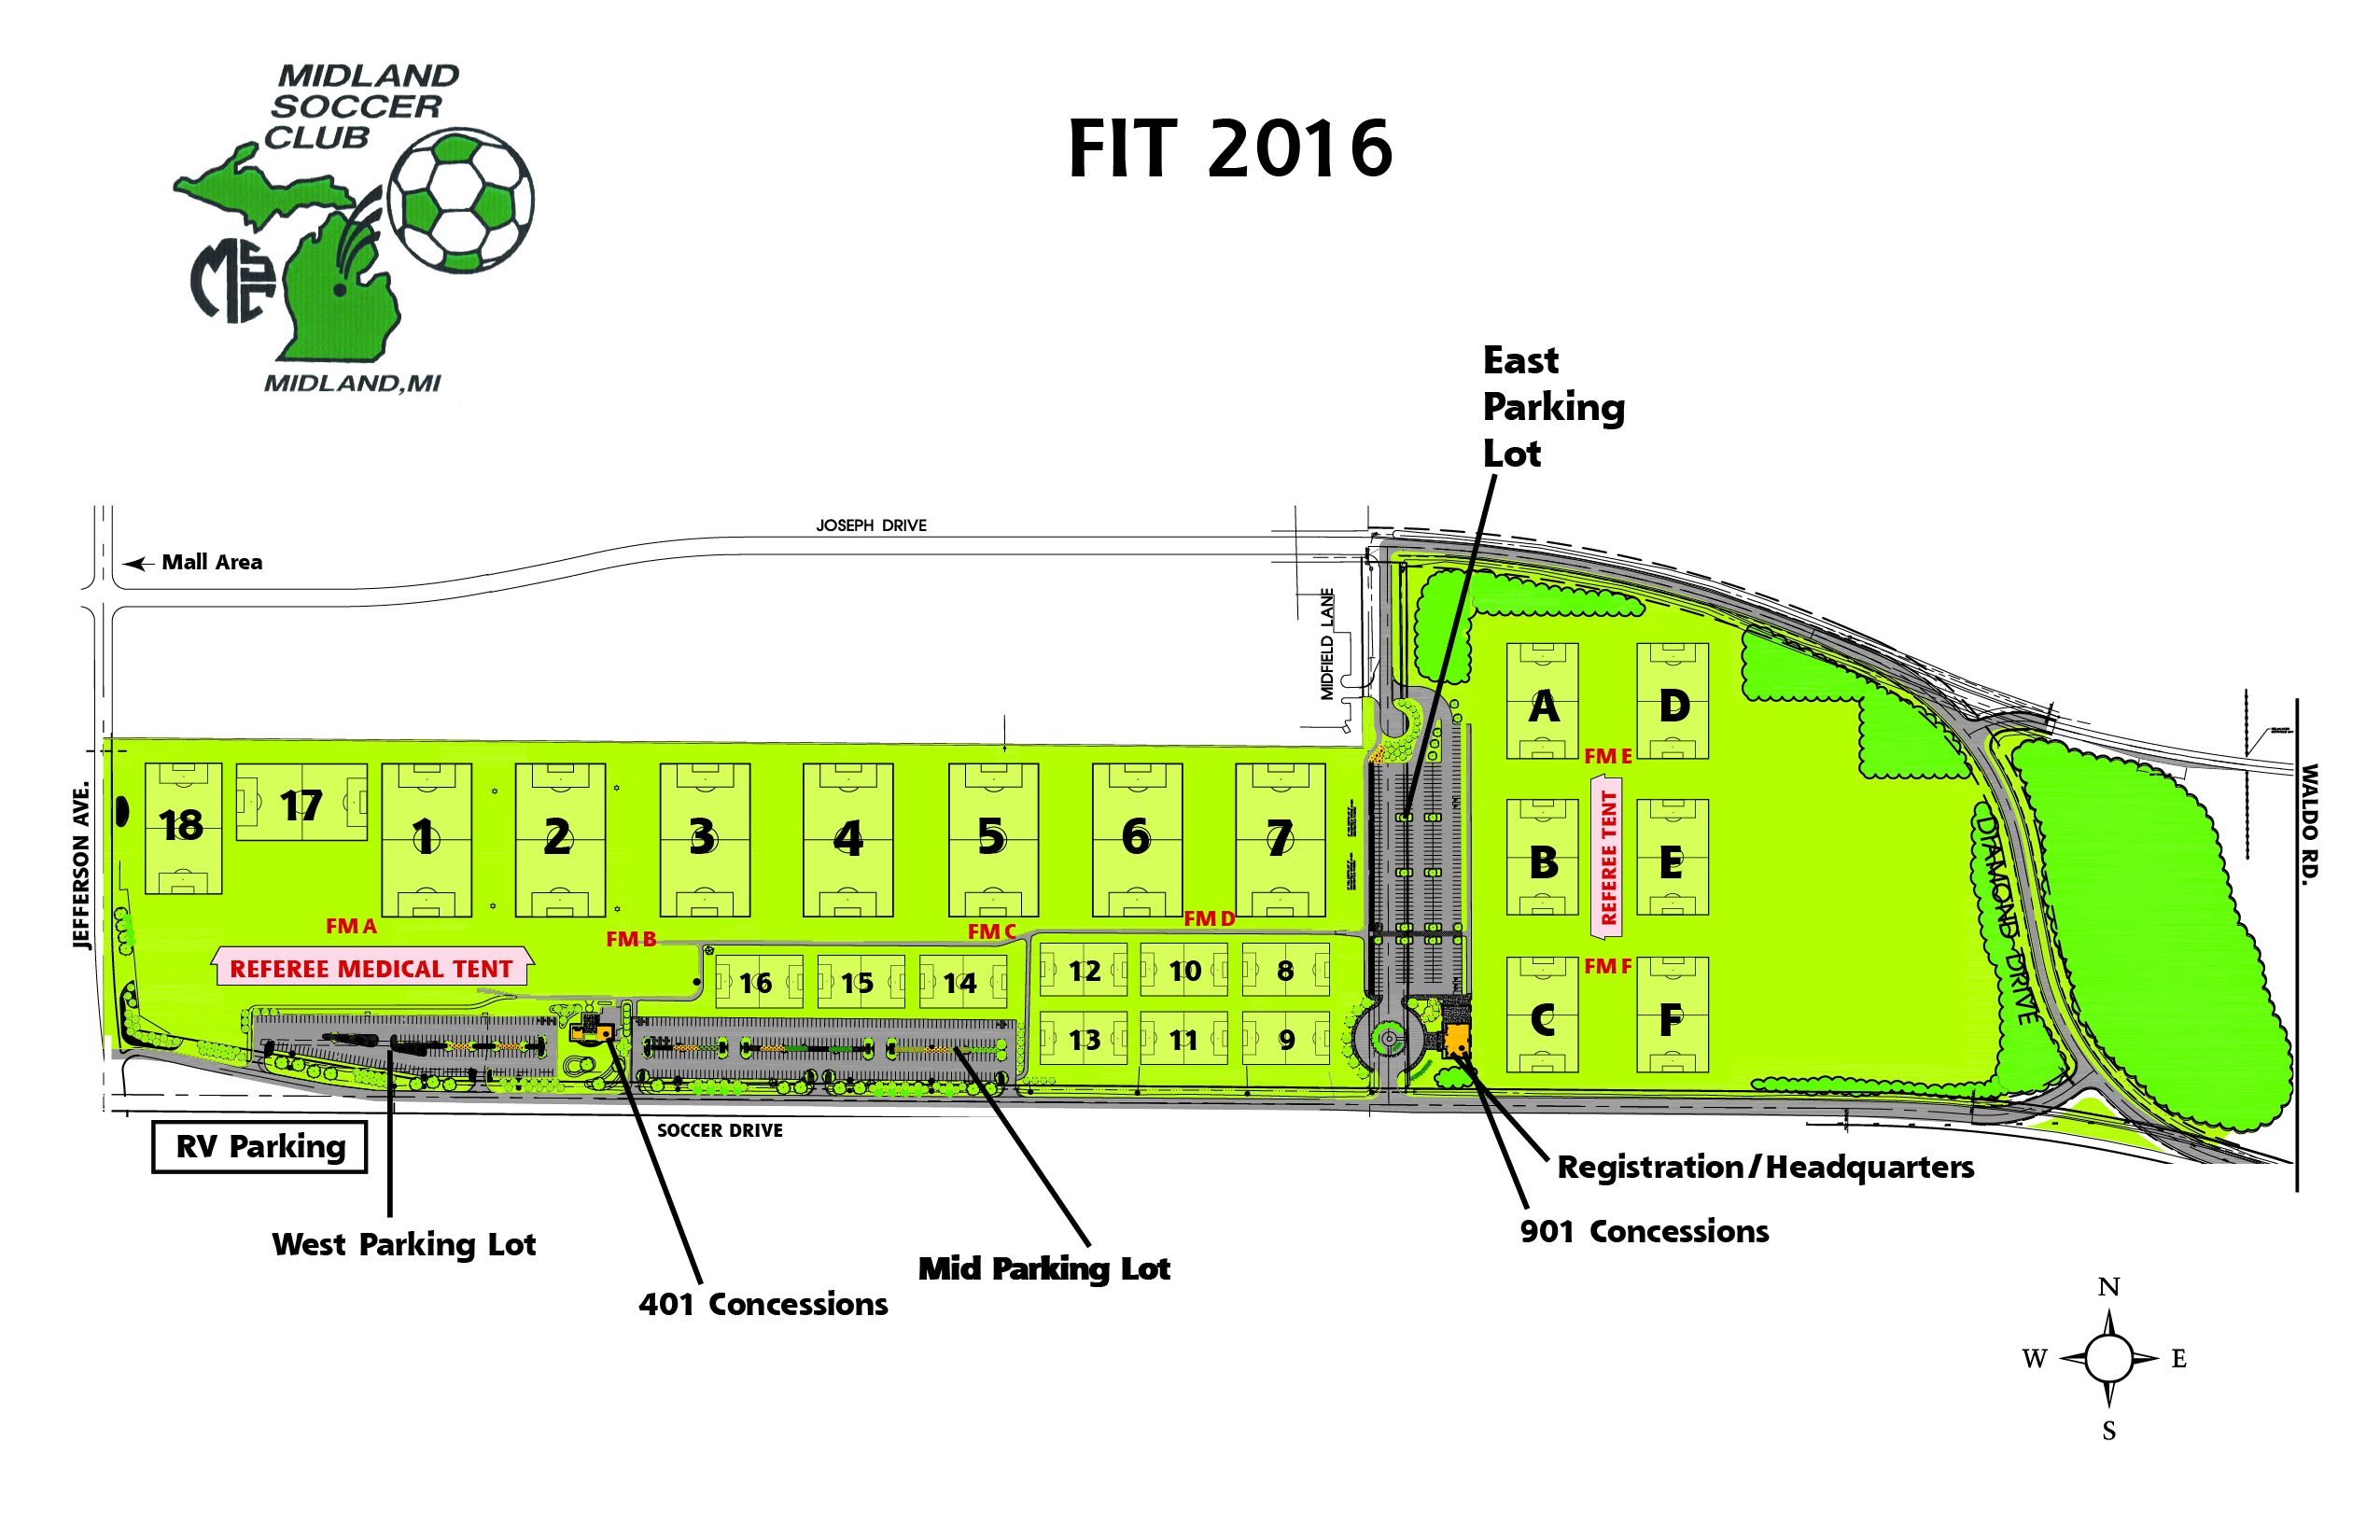 2016 FIT Map